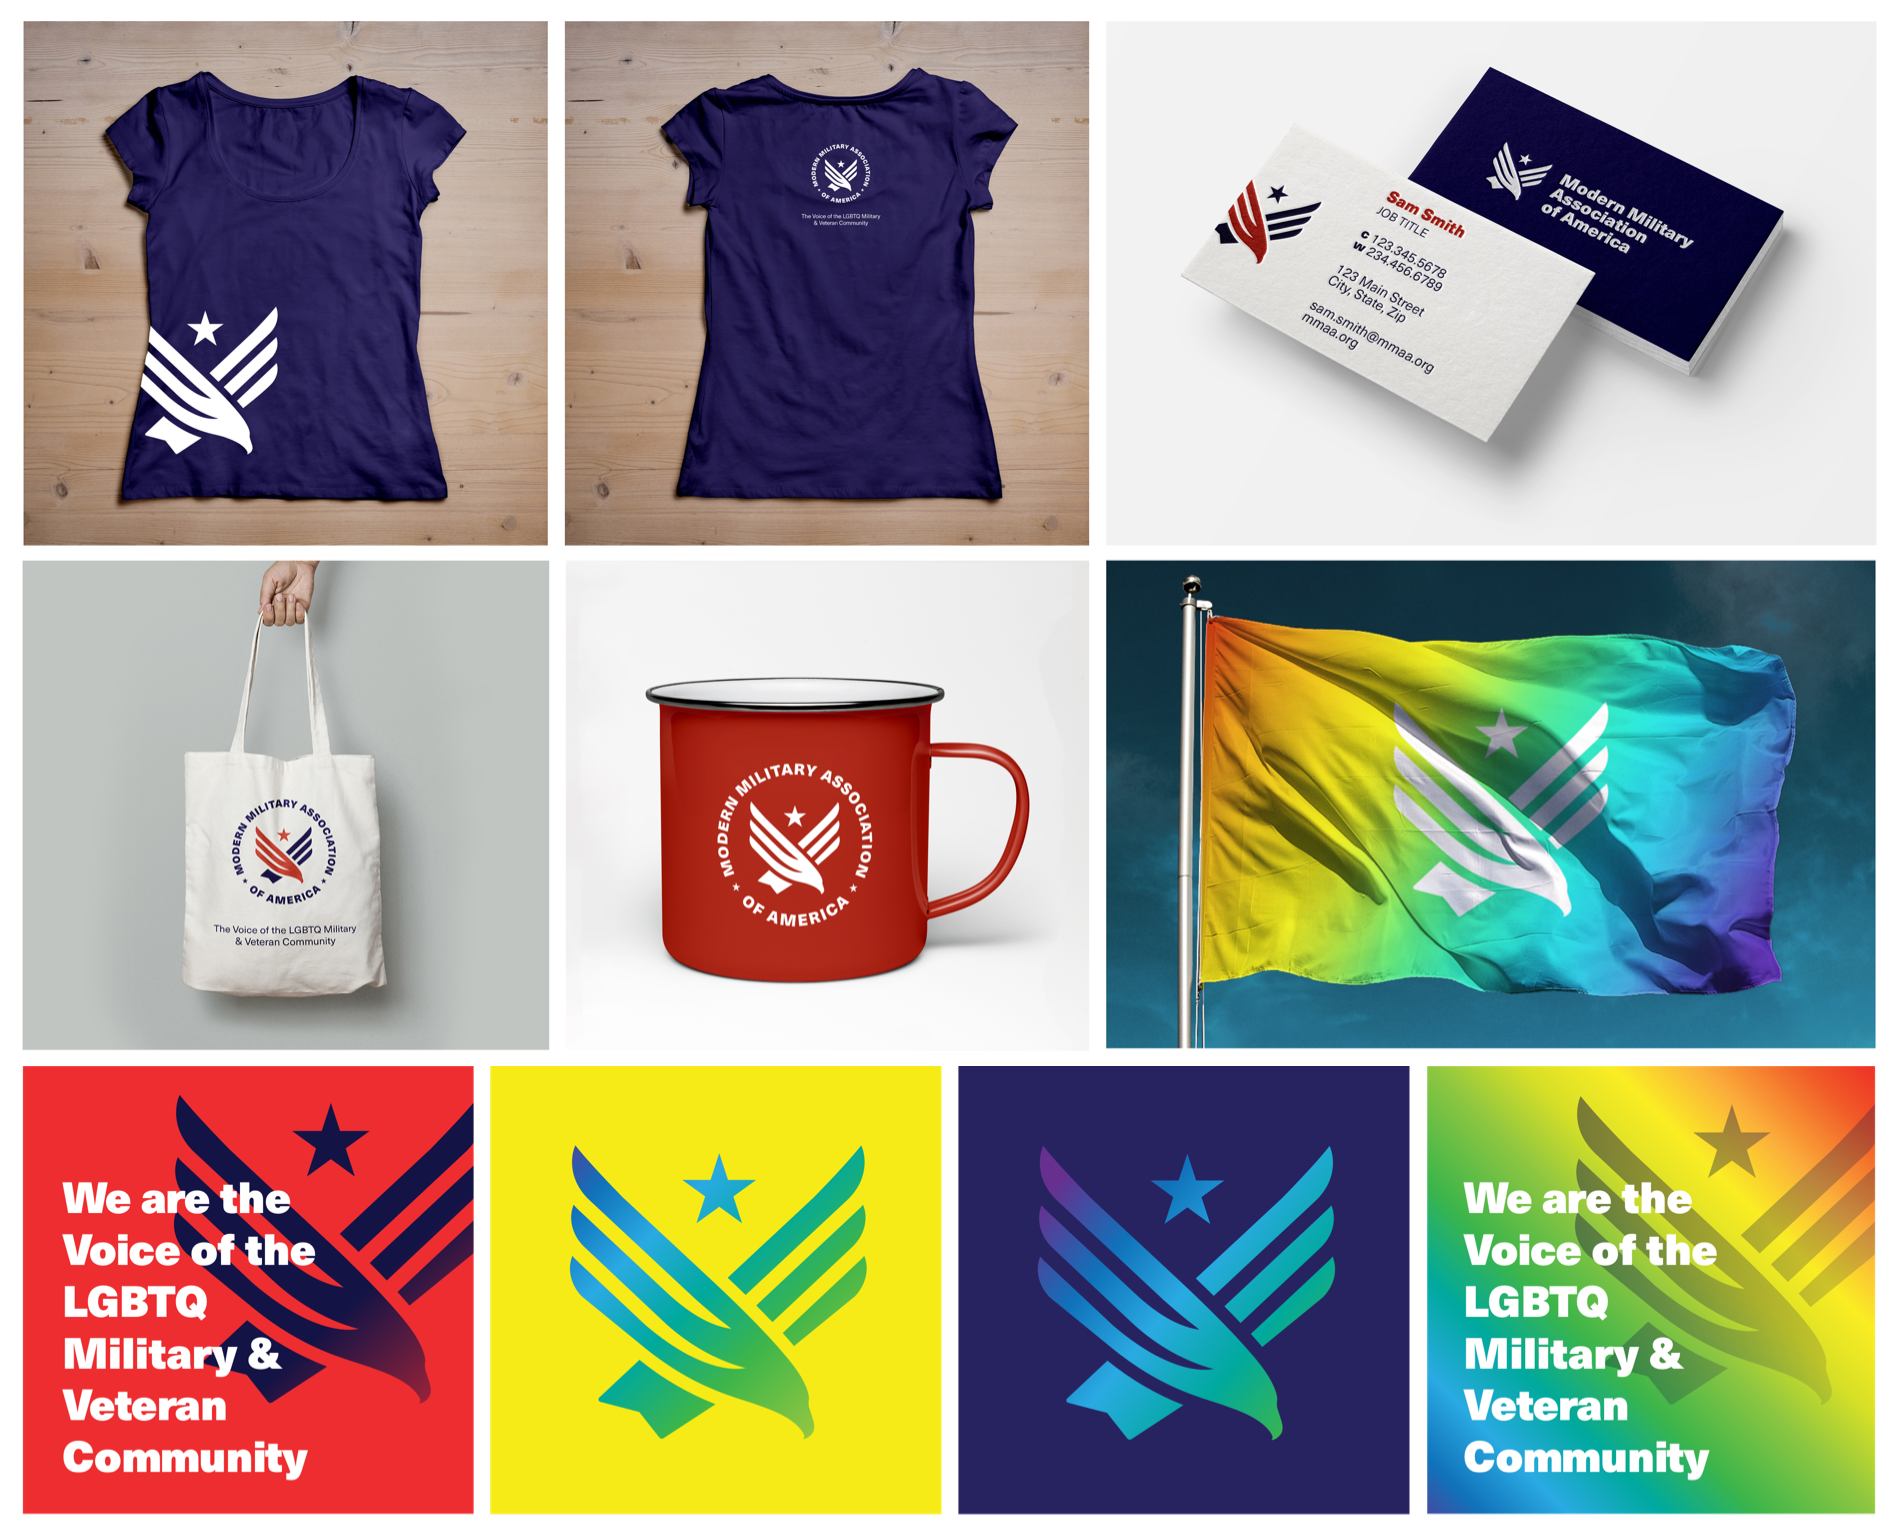 Collage of brand applications including flags, shirts, business cards and other merch.